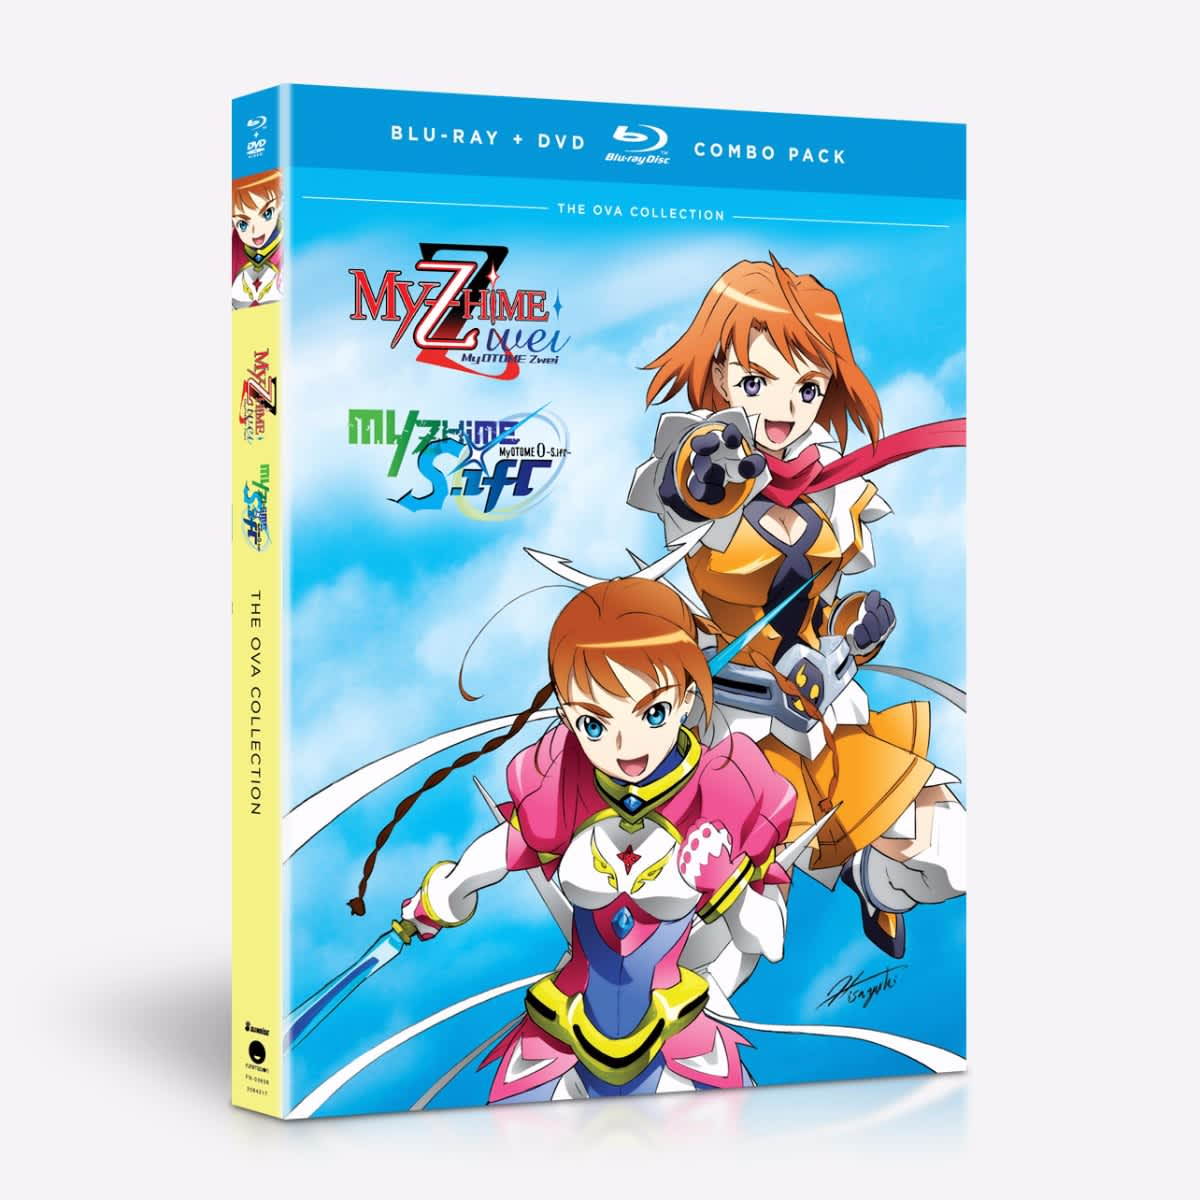 The OVA Collection – BD/DVD Combo home-video